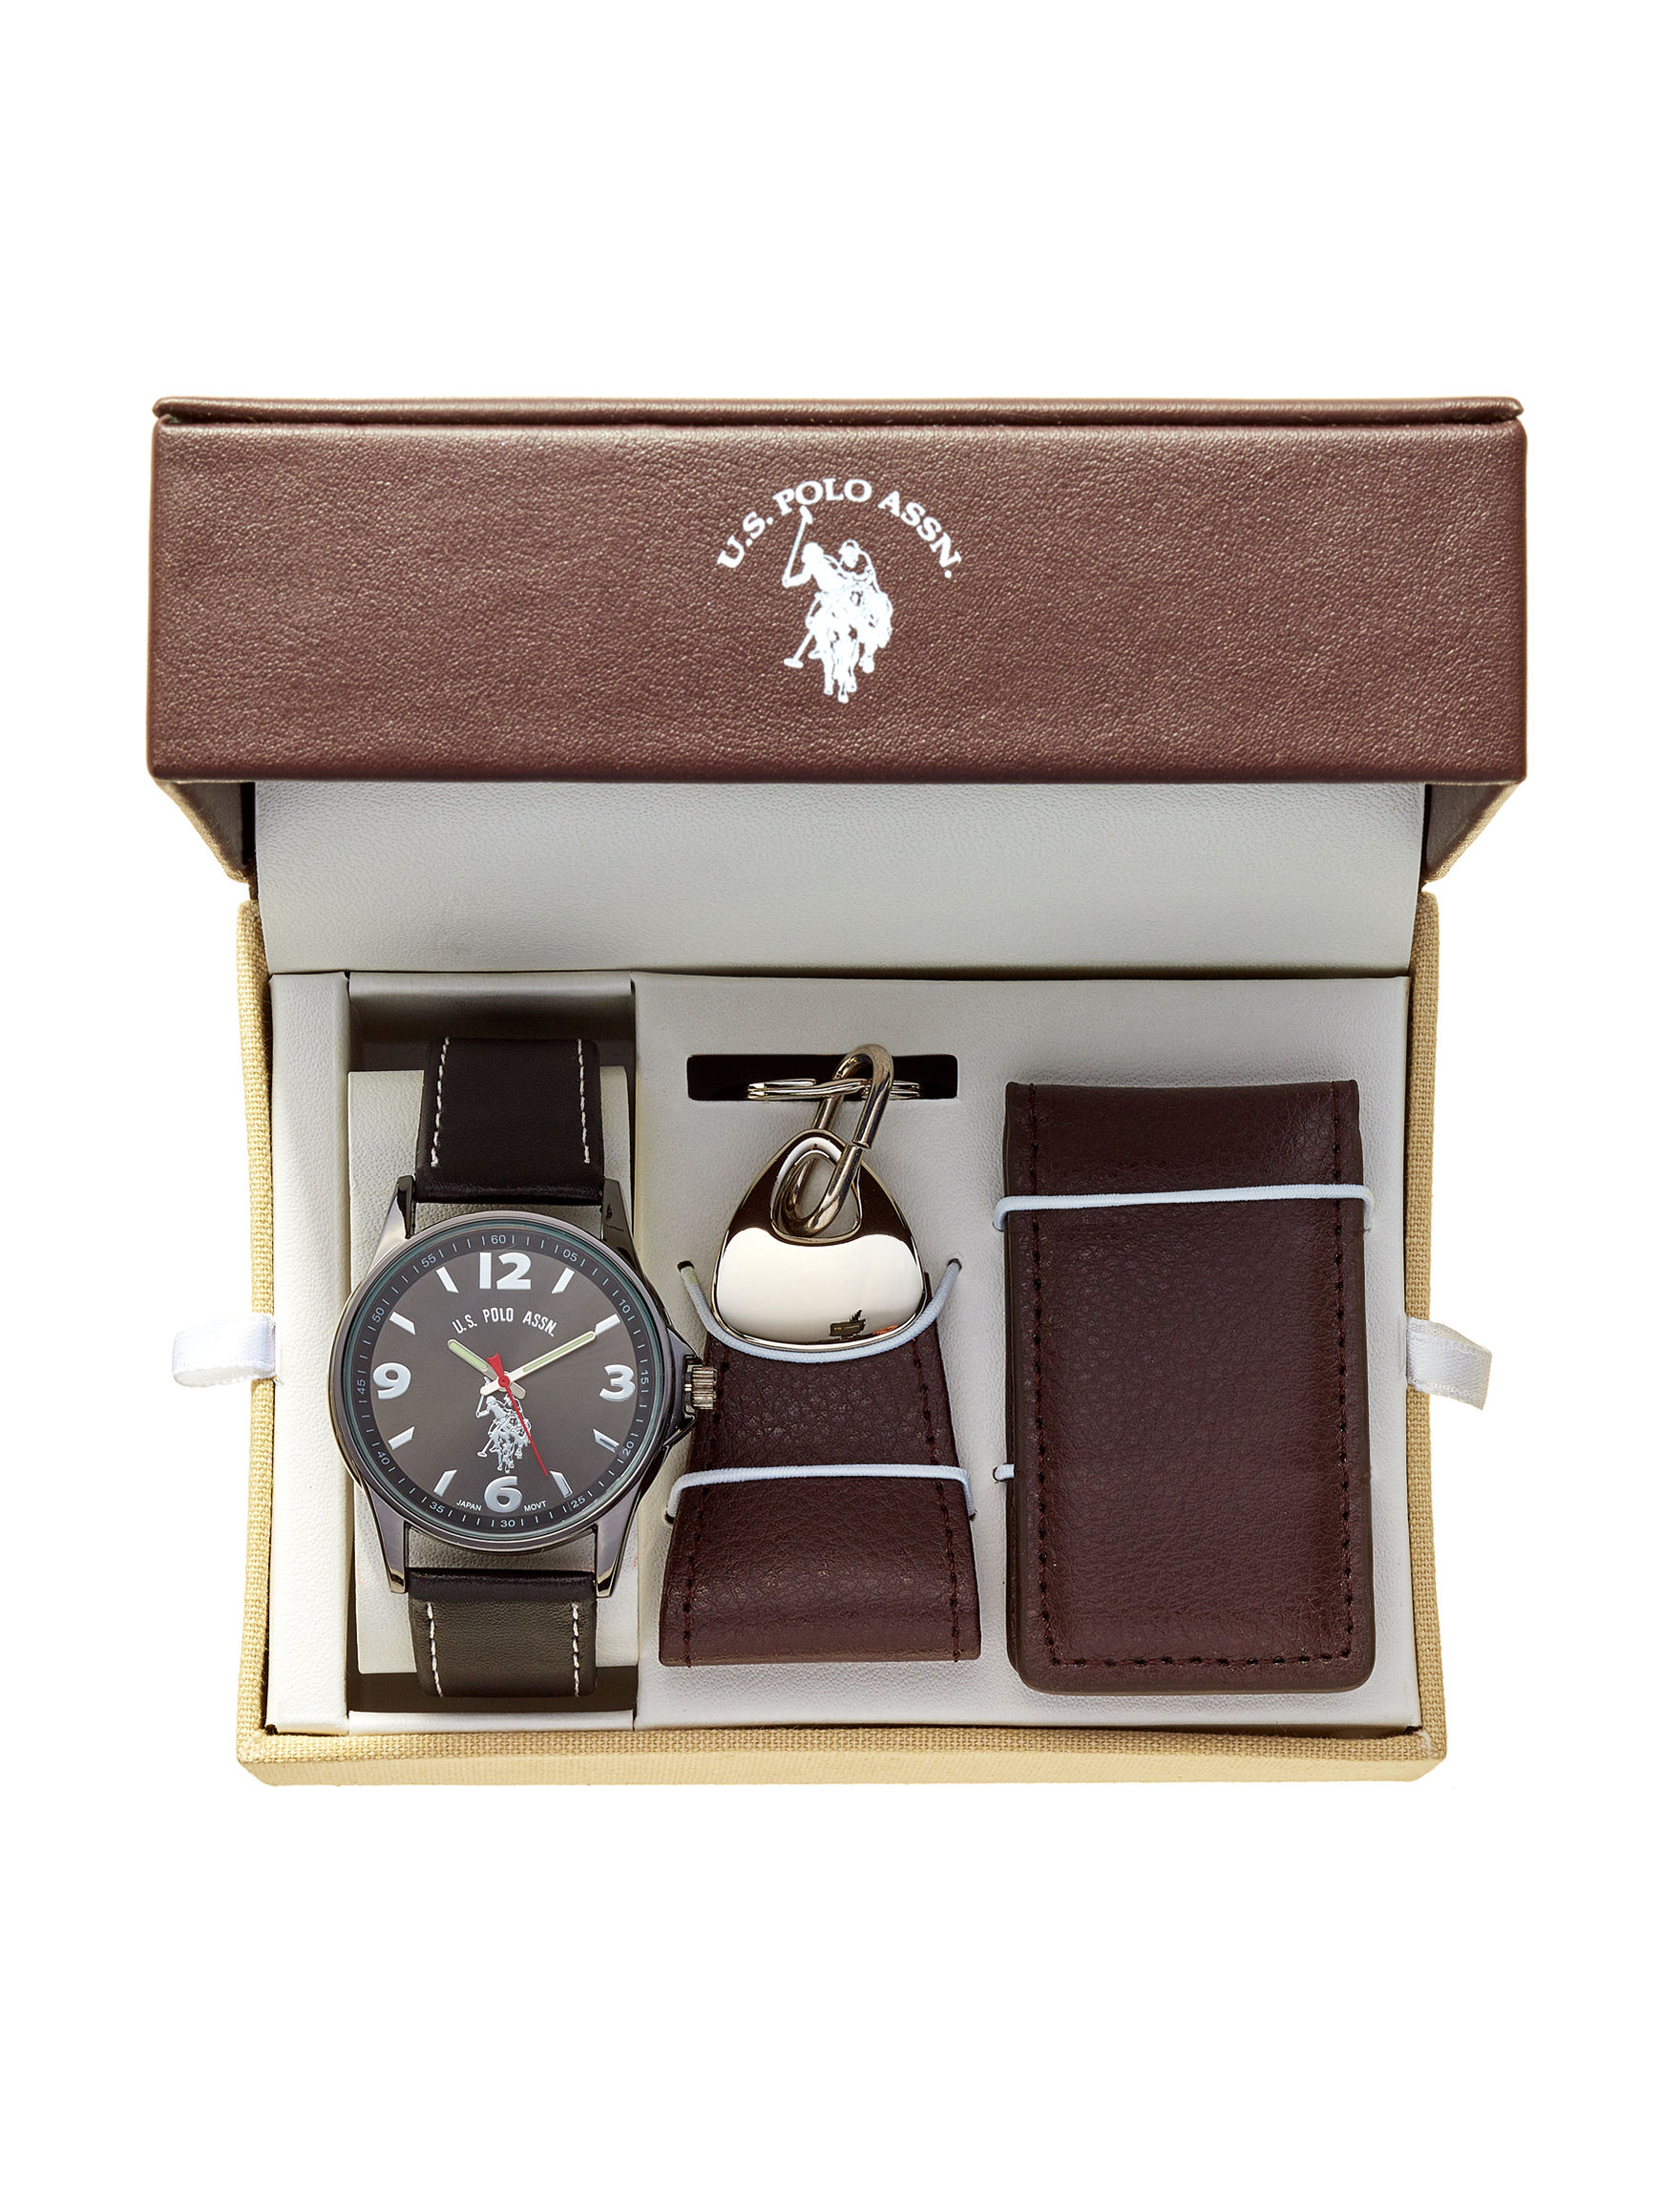 U.S. Polo Assn. Brown Fashion Watches